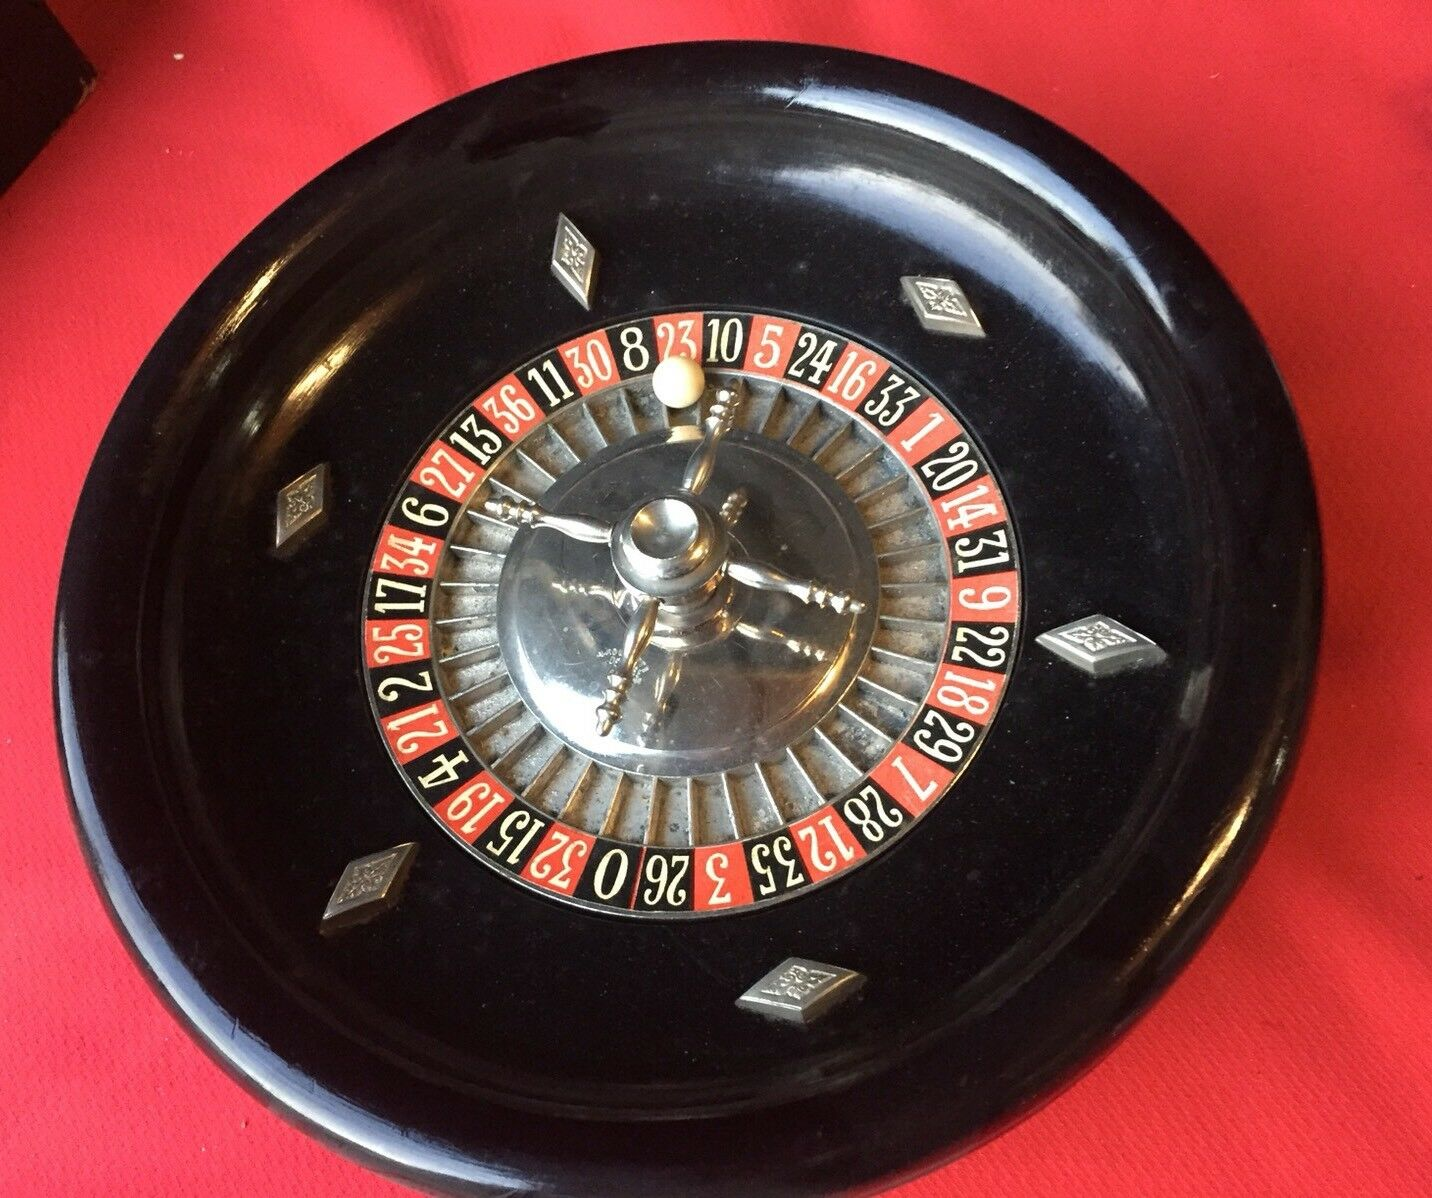 GAME OLD OLD OLD WHEEL PARISIENNE 19TH CENTURY bdb3e2